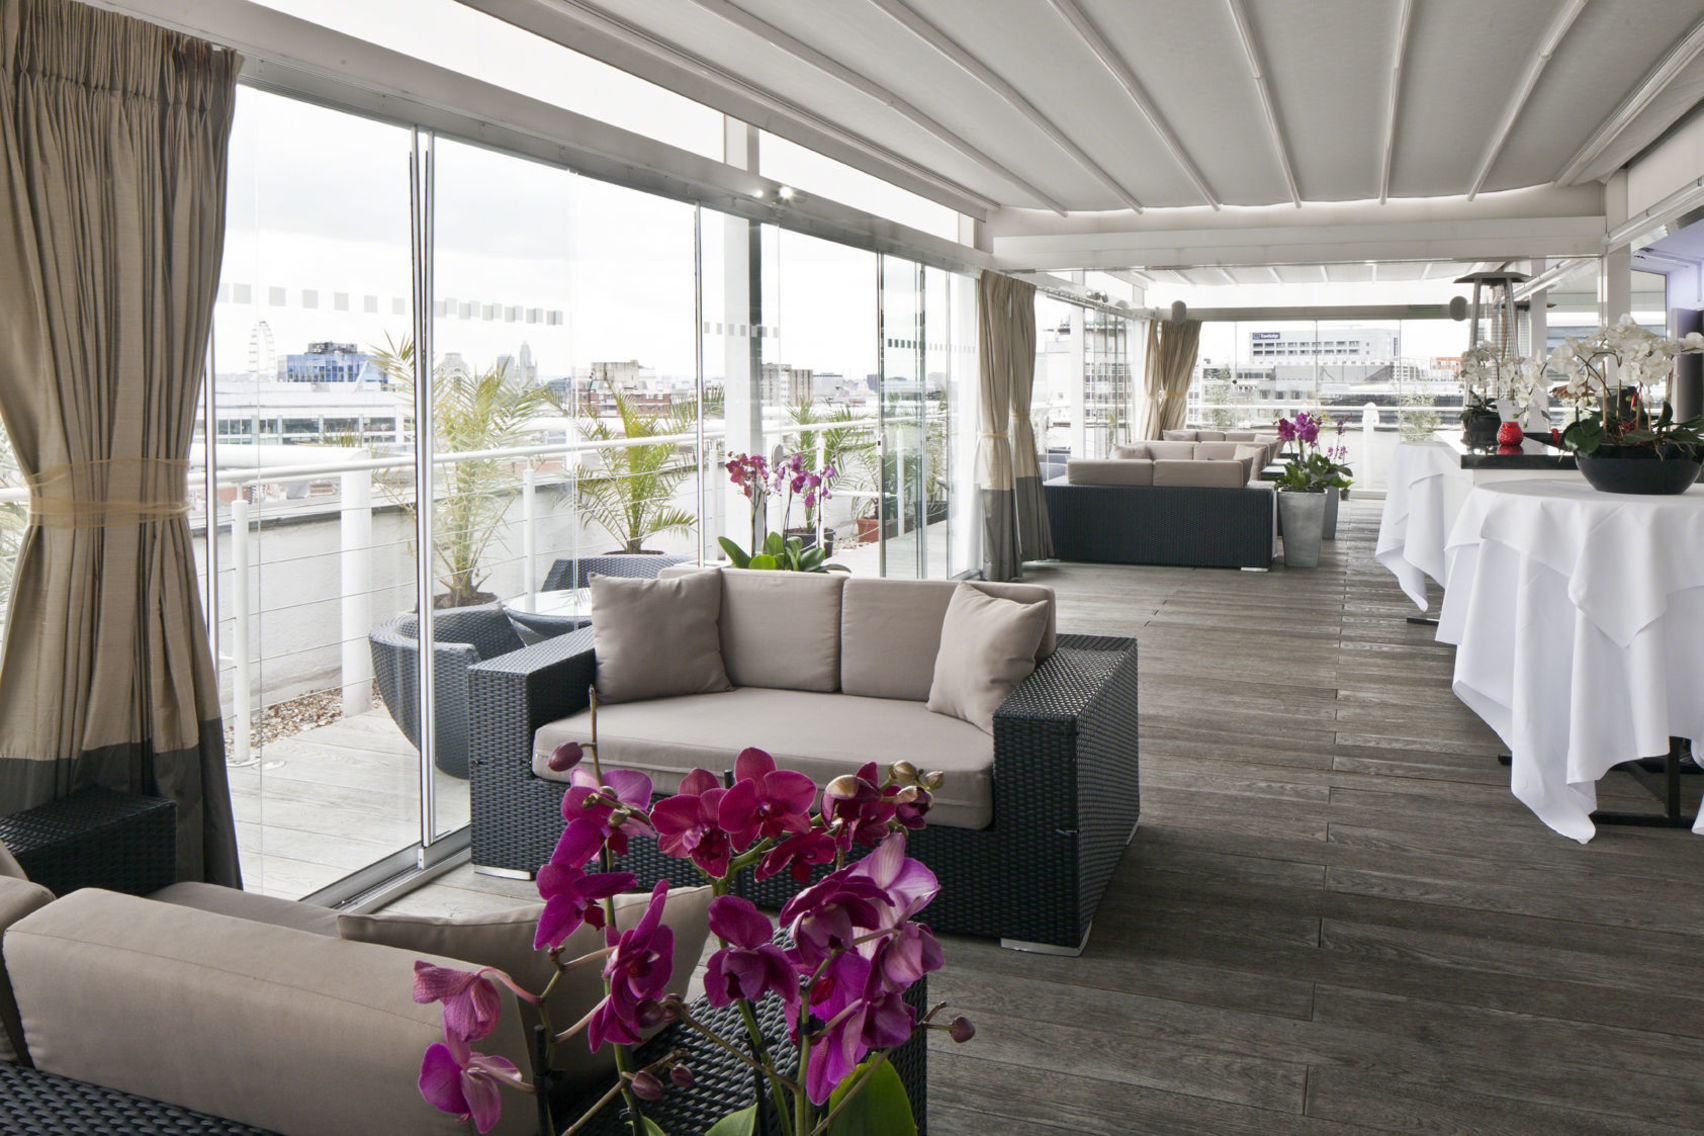 A top floor space with an outdoor roof terrace